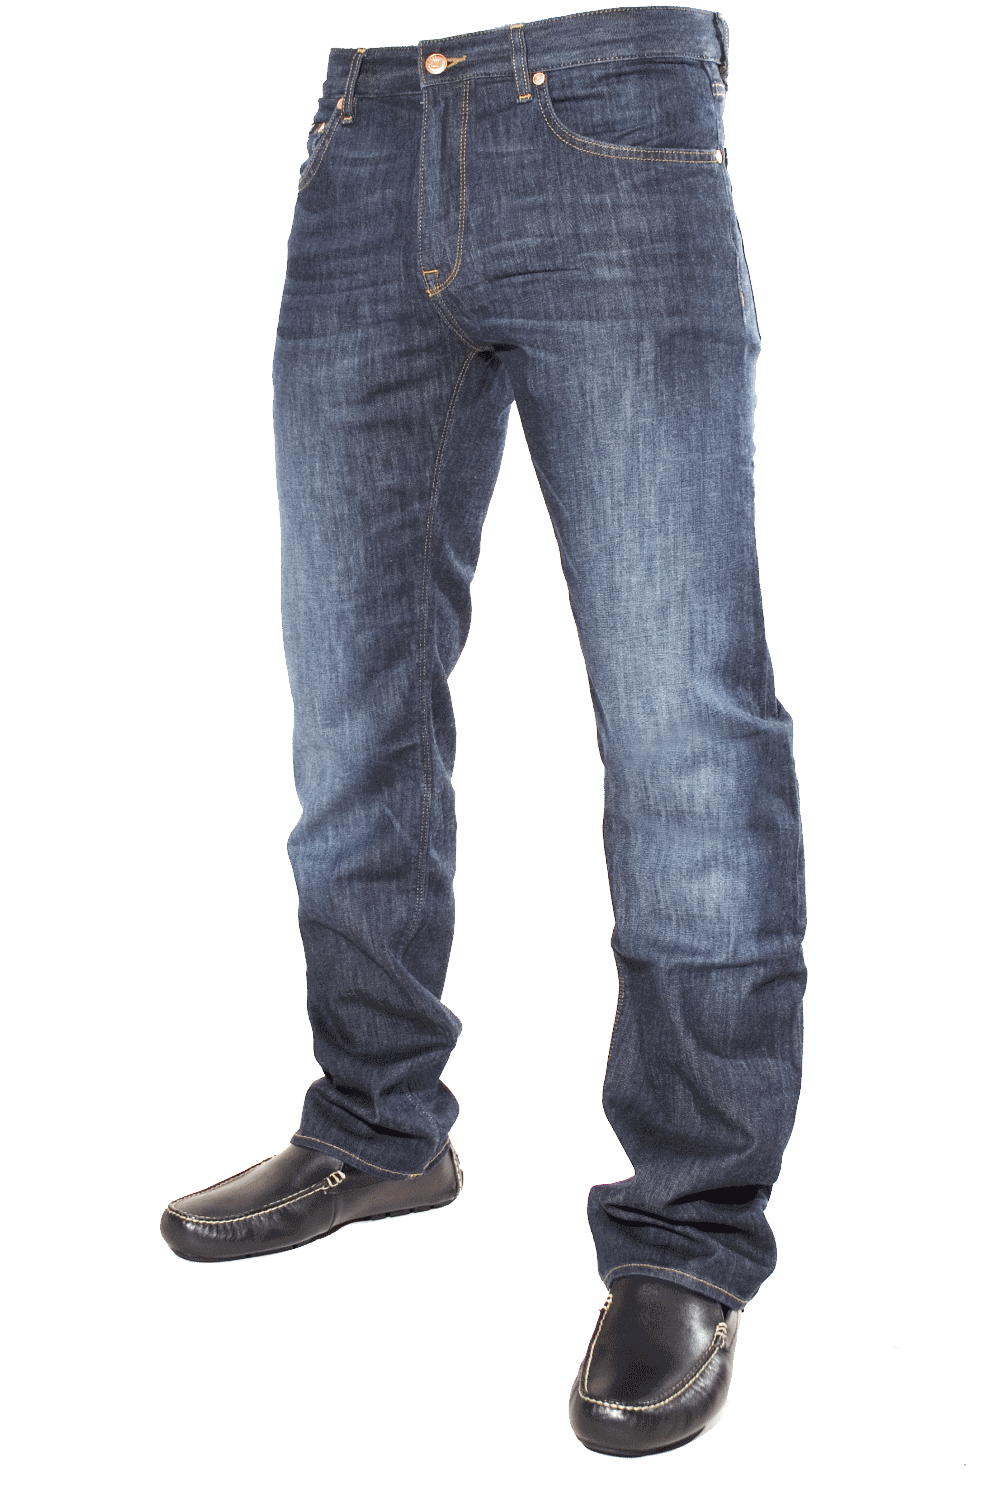 Jeans png image transparent. Clipart pants casual day